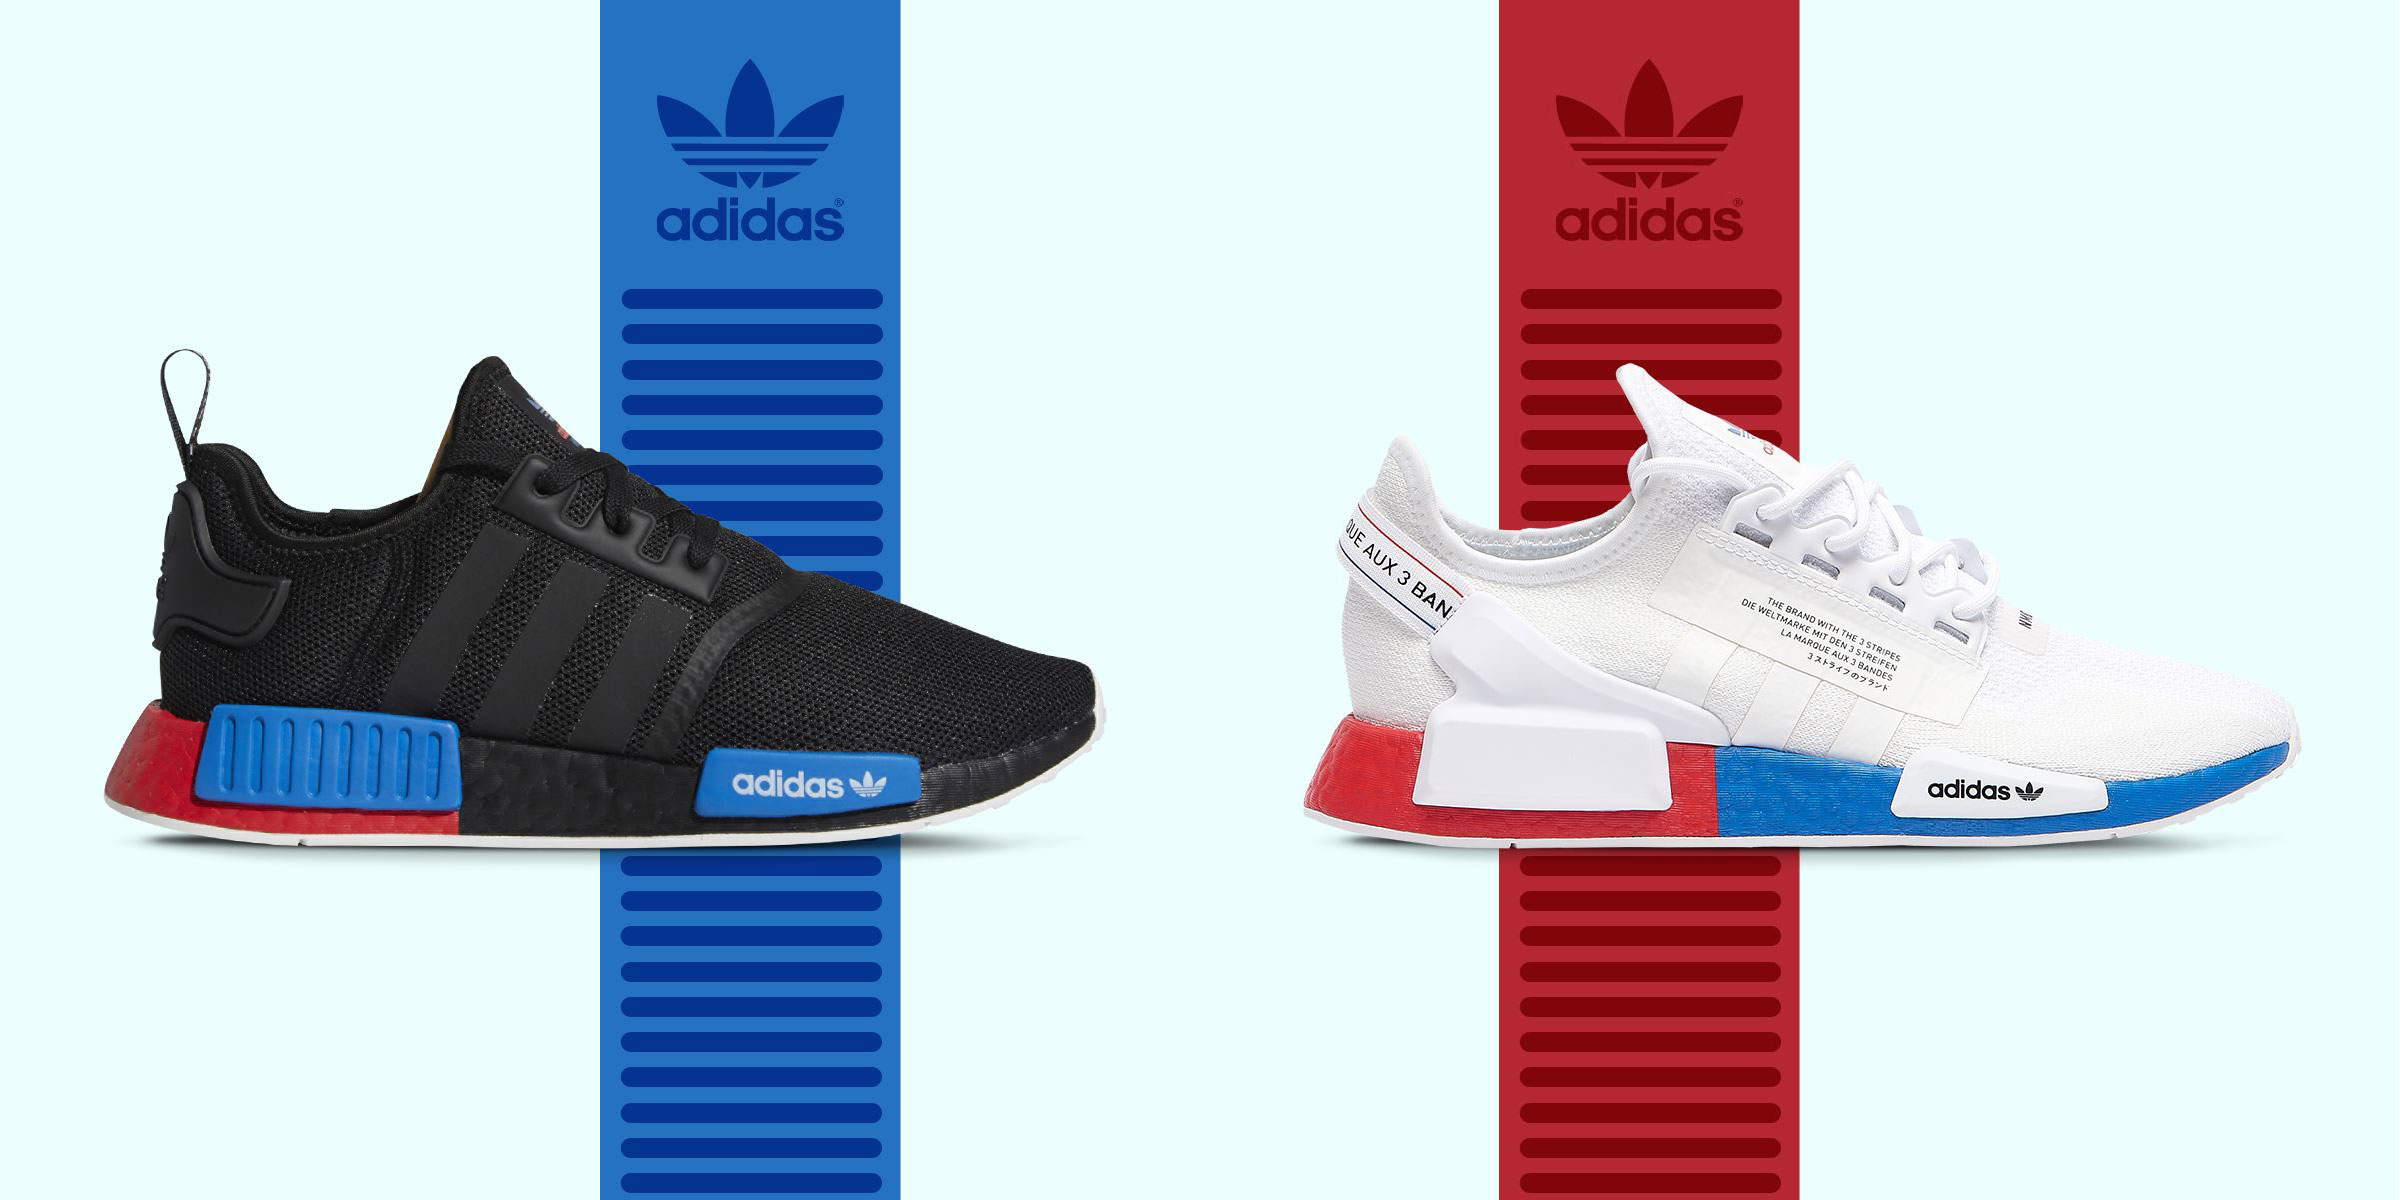 New Adidas Nmd R1 And Matching Shirts Sneakerfits Com